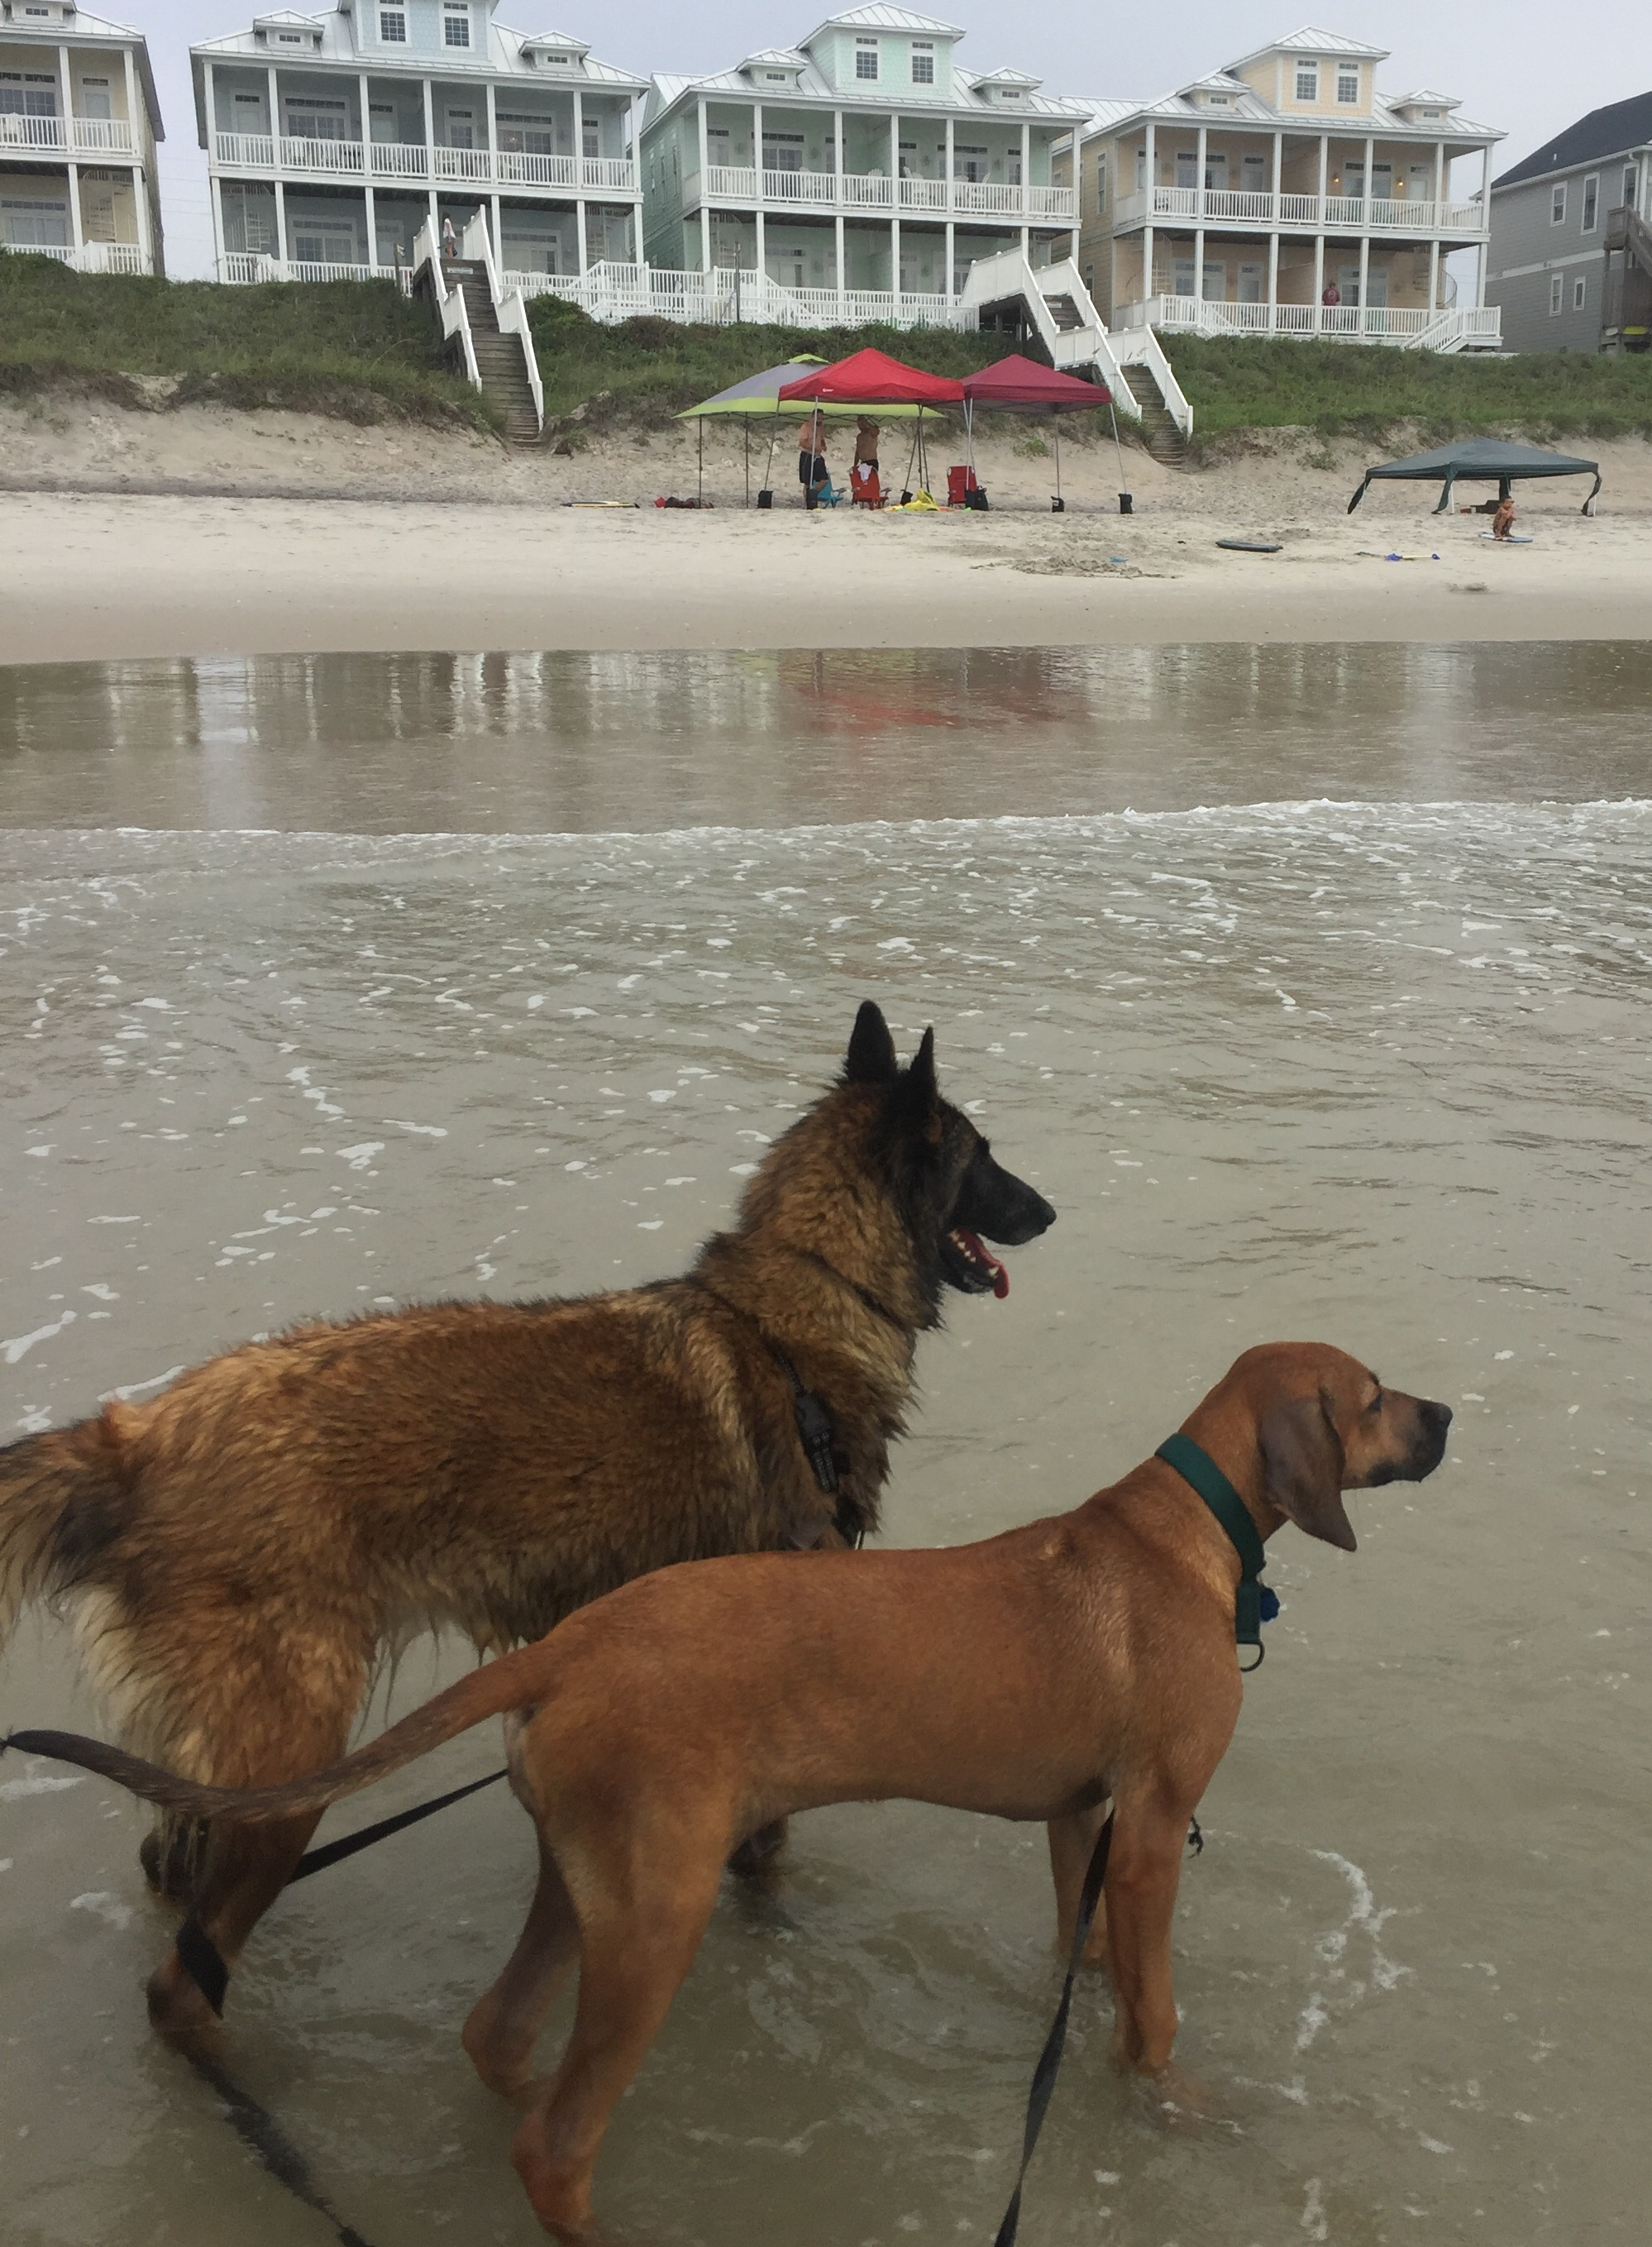 But there are some things to remember when taking your dog to the beach!  *Make certain you choose a beach where dogs are allowed. In North Carolina, there are quite a few beach that allow dogs including Topsoil, Oak Island, Nagshead, and Carolina Beach. But each Beach has their owner rules-typically during On season dogs must be leashed. During off season some beaches will allow dogs off leash. Check the rules before you go!  *Be prepared to clean up after your dog! Bring poop bags and be ready to clean up well if they use the bathroom.  *What the weather closely. You and your dog can easily get overheated on the beach. Bring shade (a canopy tent, umbrella, etc). And when it starts getting hot, it is safer to take a break from the beach. Remember the sand can get really hot and burn your dog's feet too! Make certain you have a place for you and your dog to cool off!  *Use caution and go slow when introducing your dog to the ocean. Sometimes it is best to start on the sound side where the waves are more mild. But go slow and do not force your dog into the water. Let them adjust and go in at their own pace. And if they are scared, maybe try again another time. Also make certain they do not go too far and get injured. Keeping them on leash initially is a good idea to make certain they cannot get into trouble. Tilly and Salza both learned it was so much fun to jump the waves!